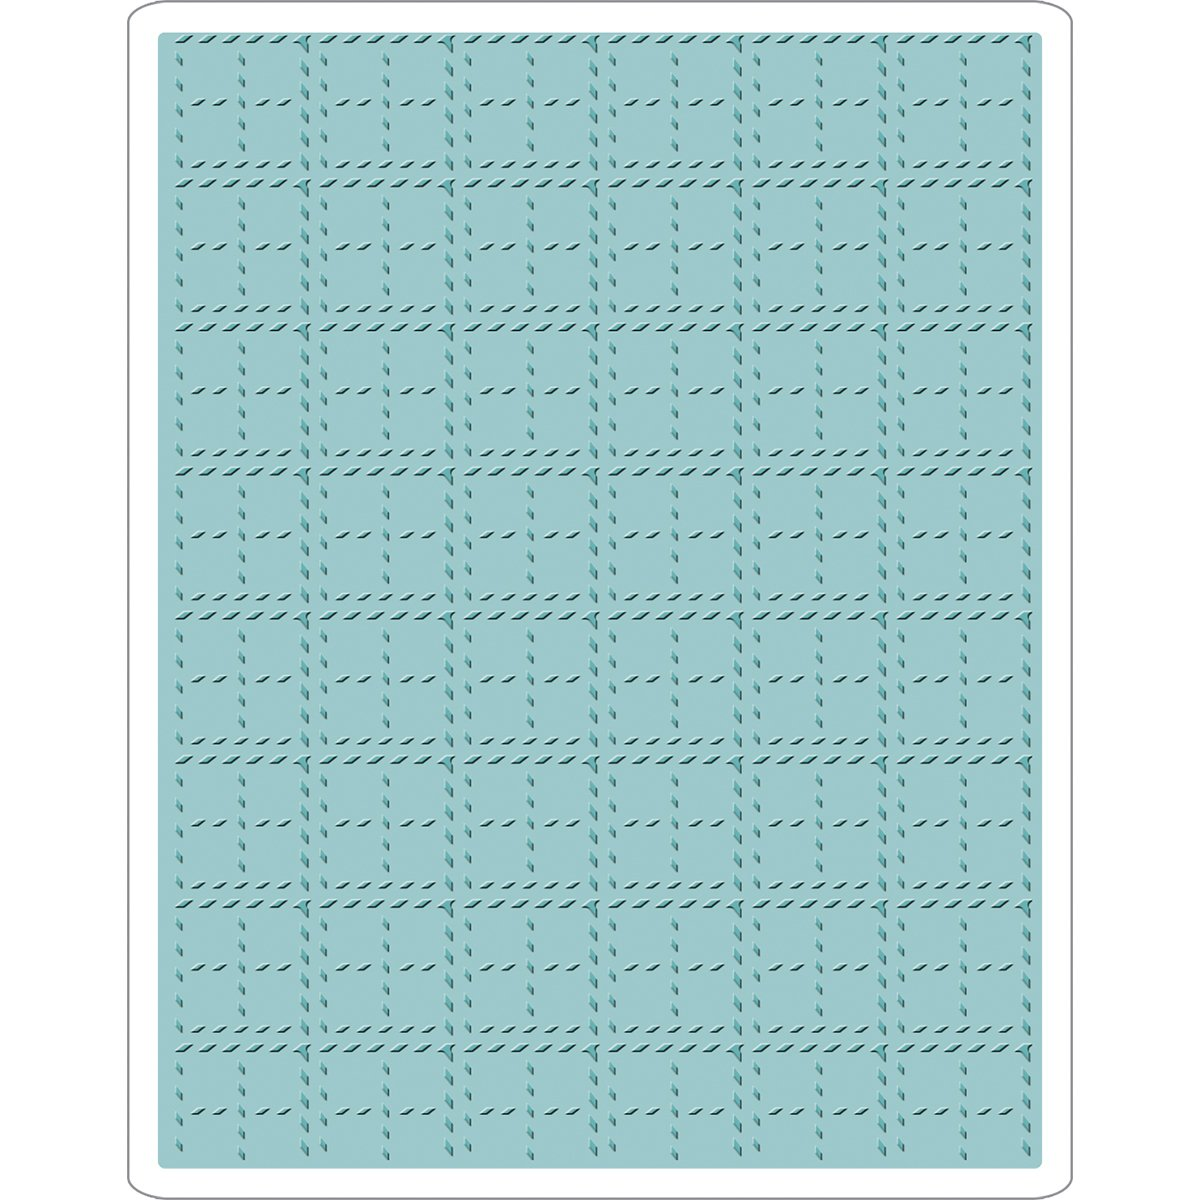 Sizzix Tim Holtz Alterations Collection Christmas Texture Fades Embossing Folder Stitched Plaid (8 Pack)